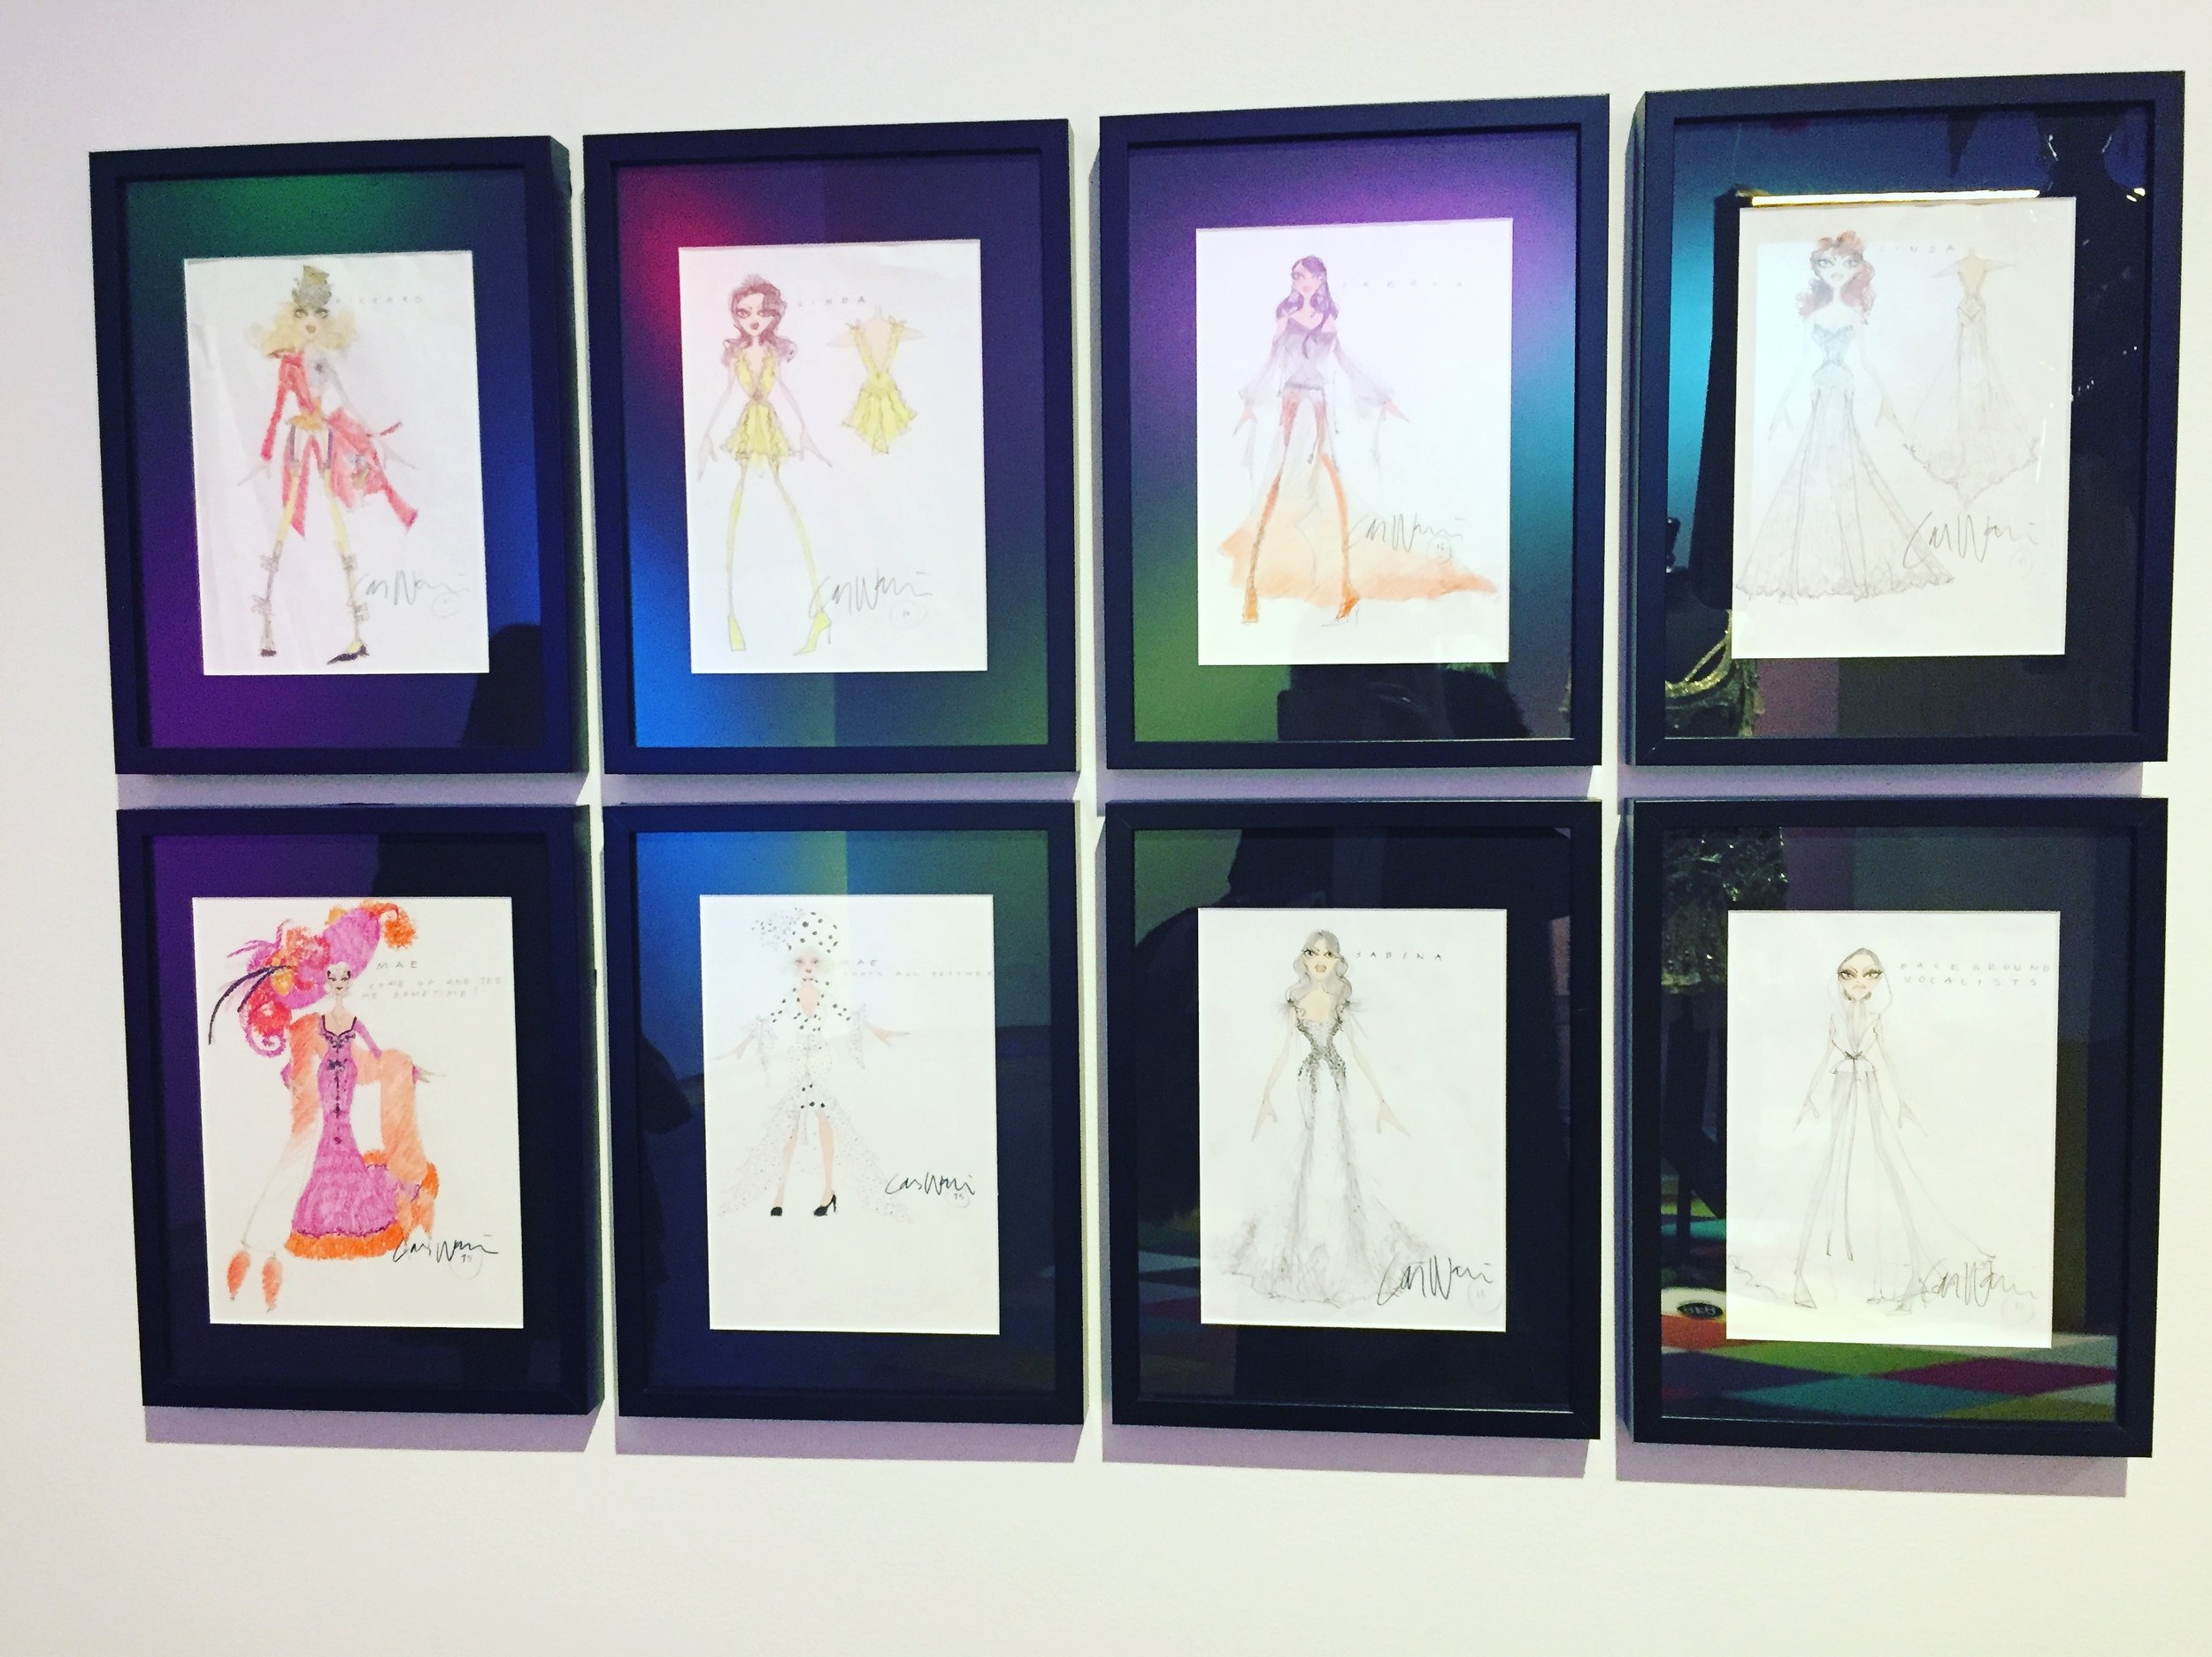 Lars Wallins drawings of dresses.